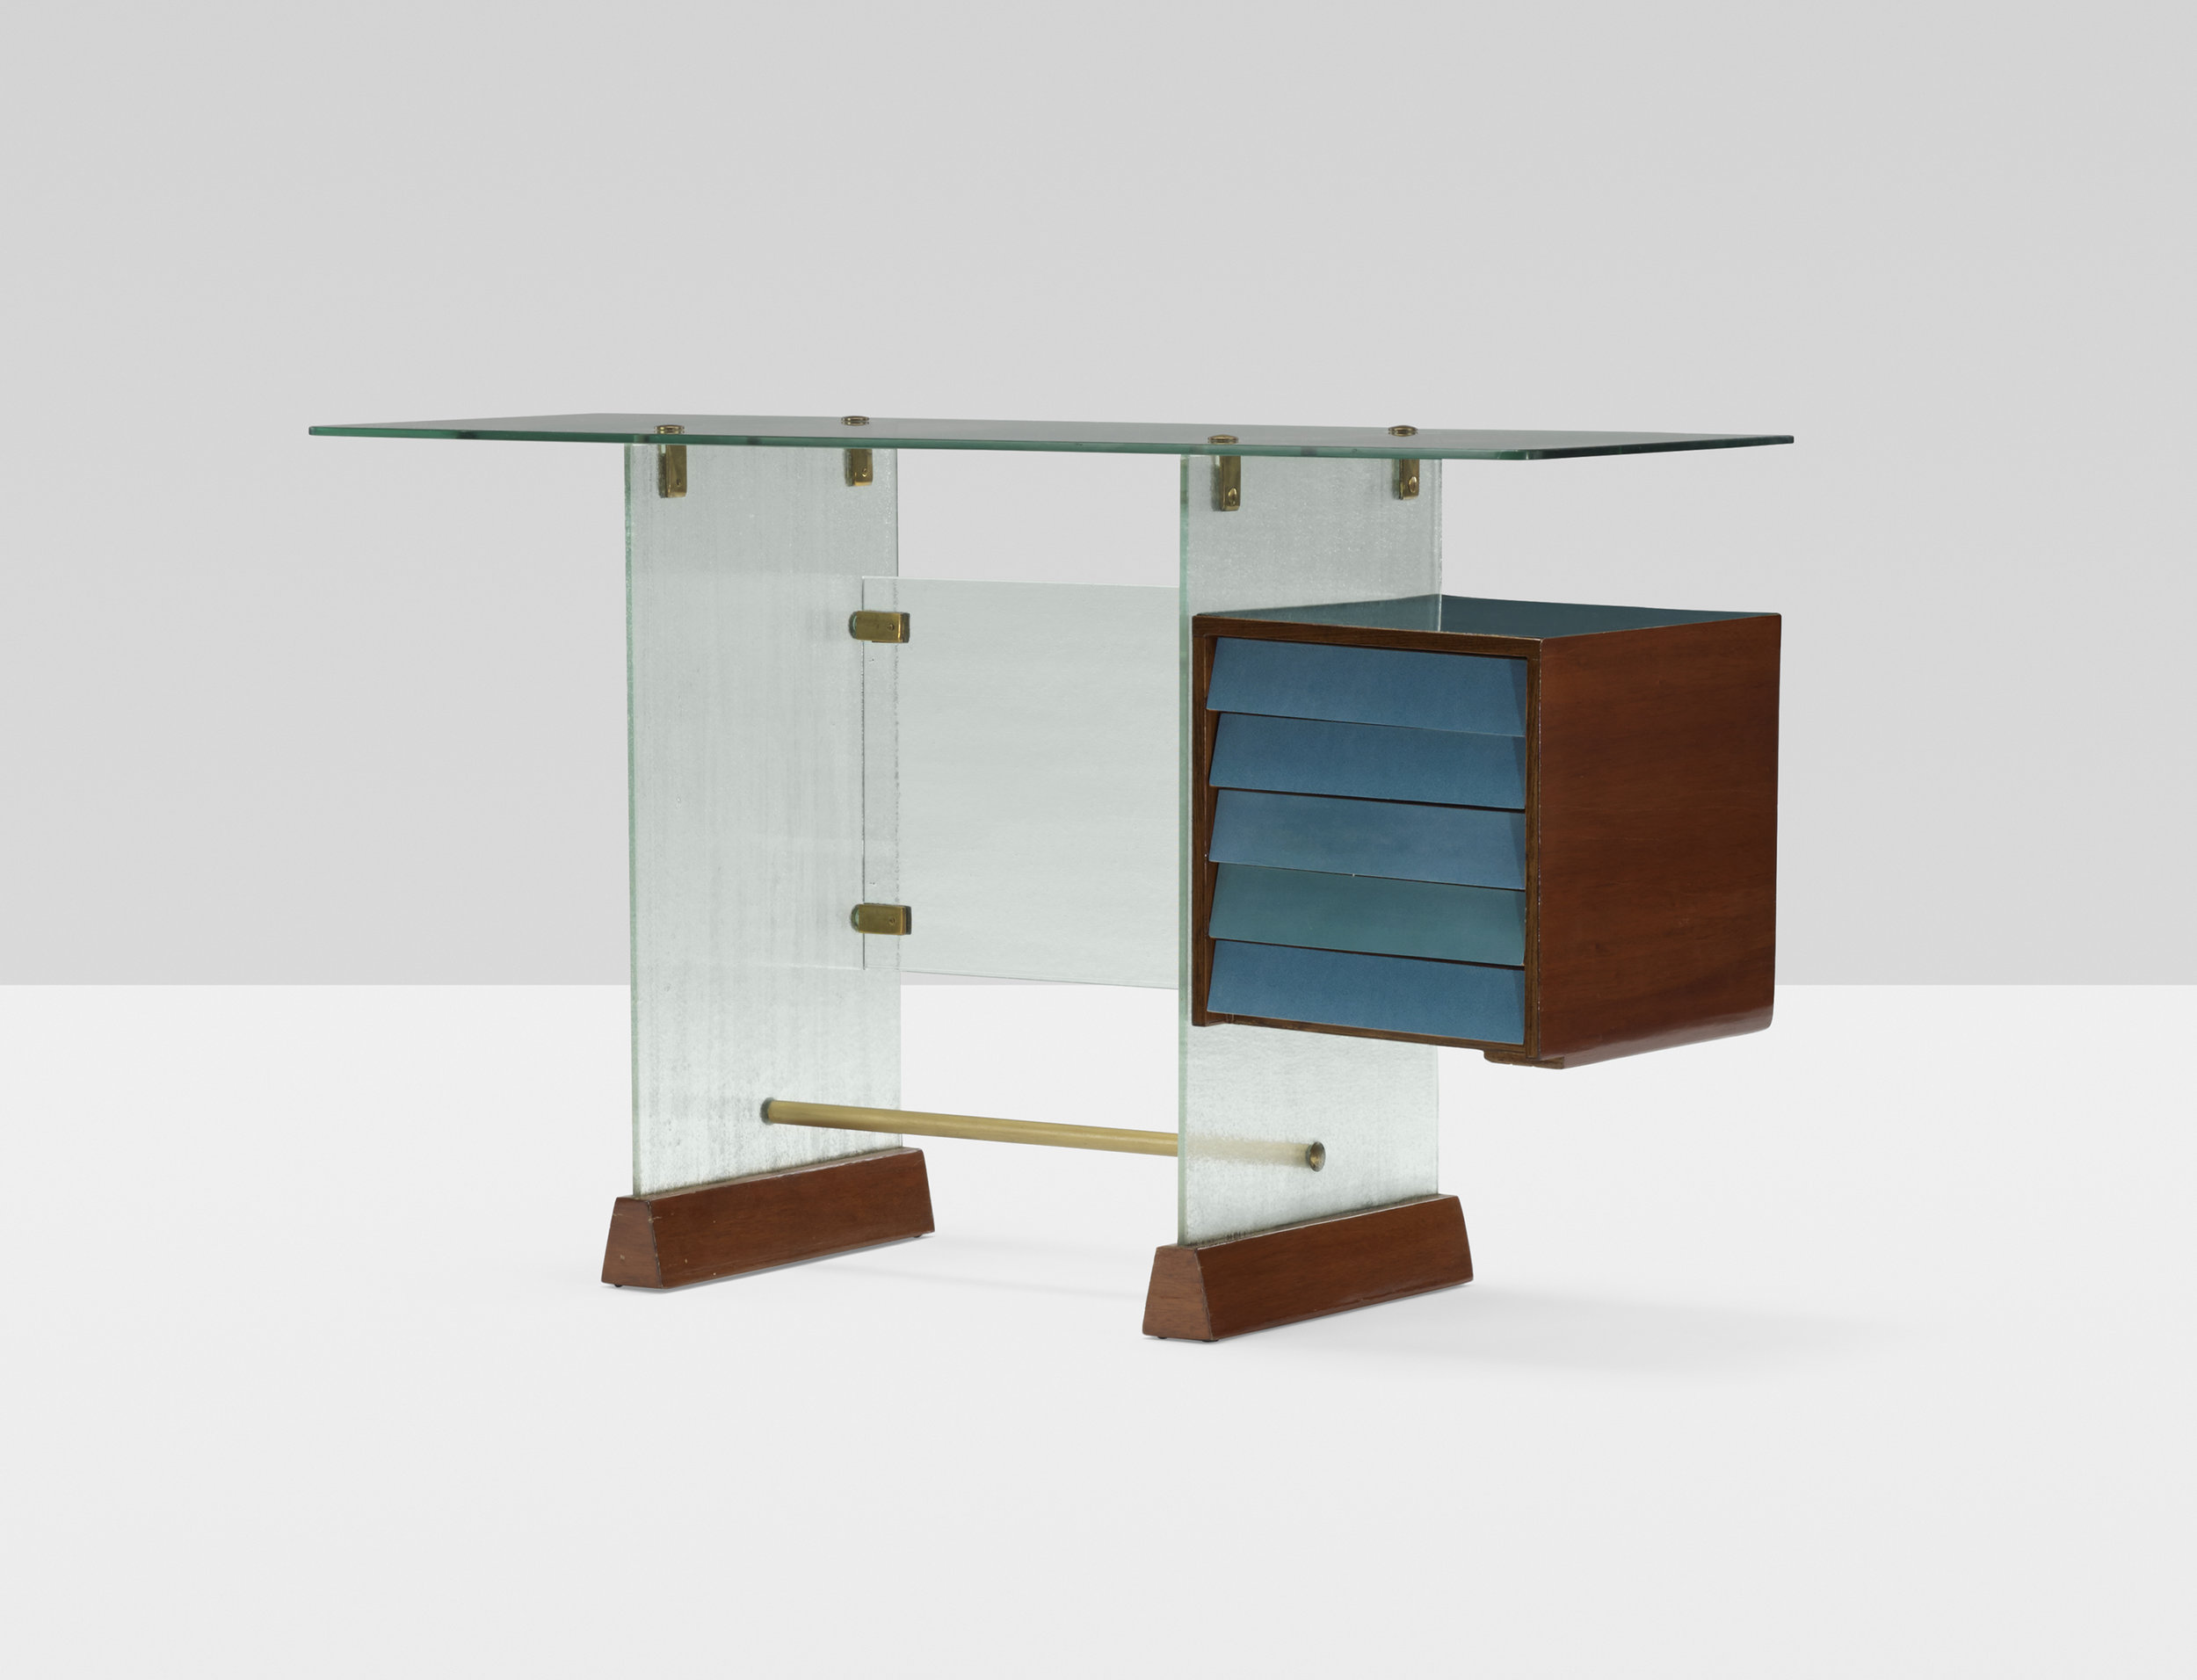 Giò Ponti (Italian, 1891–1979) Desk from the Societa Vetrocoke Building, Milan, ca. 1939 Vitrex glass, laminate, Italian walnut, enameled steel and brass